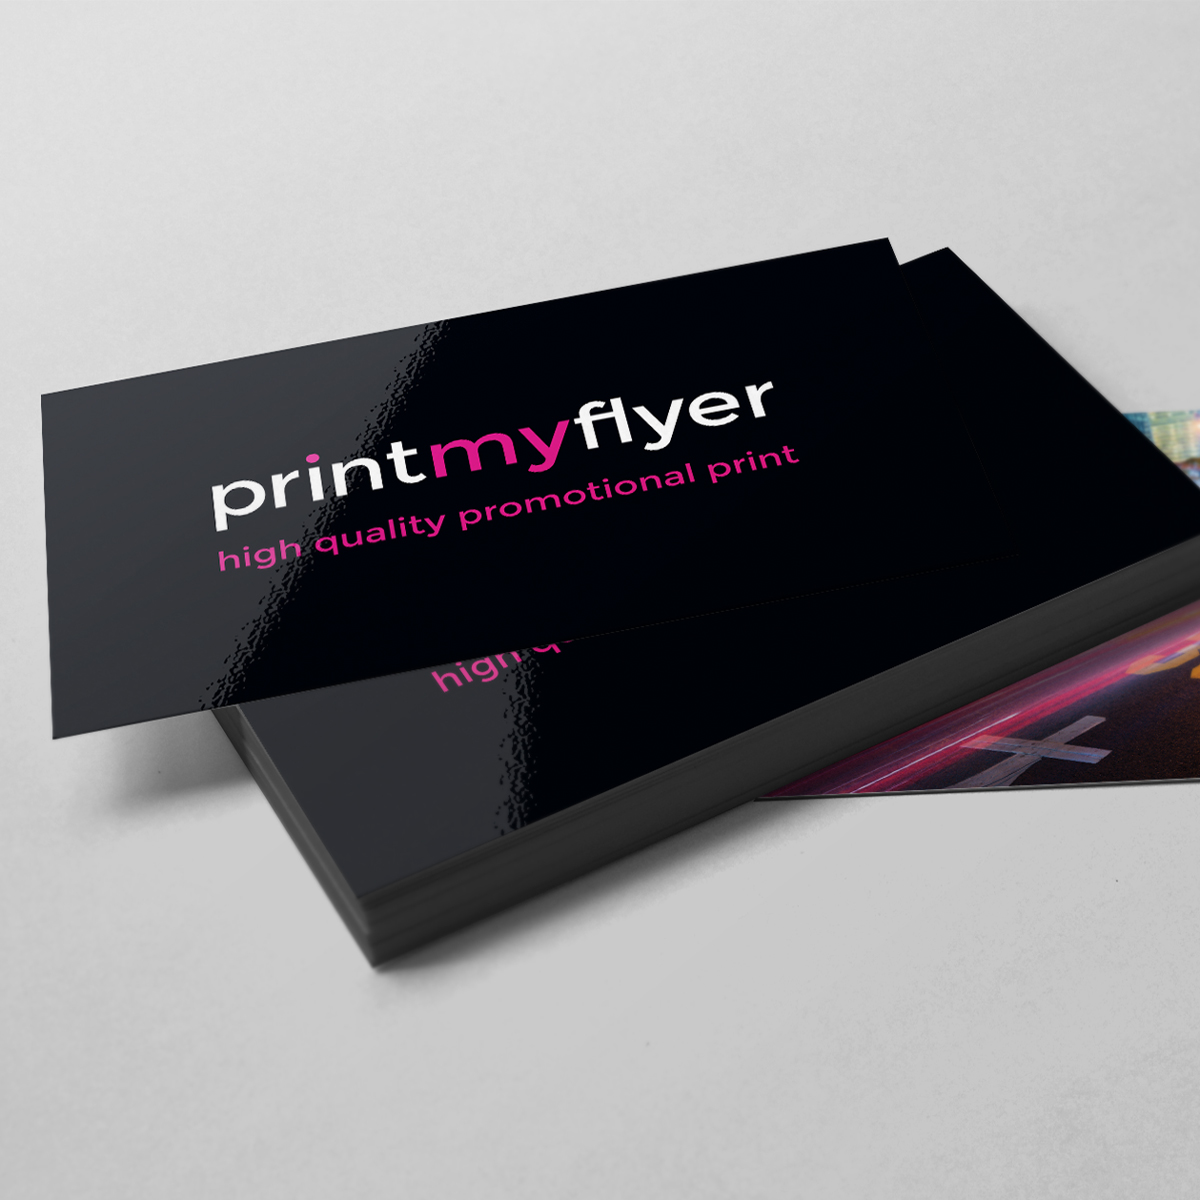 laminated business cards - How To Laminate Cards